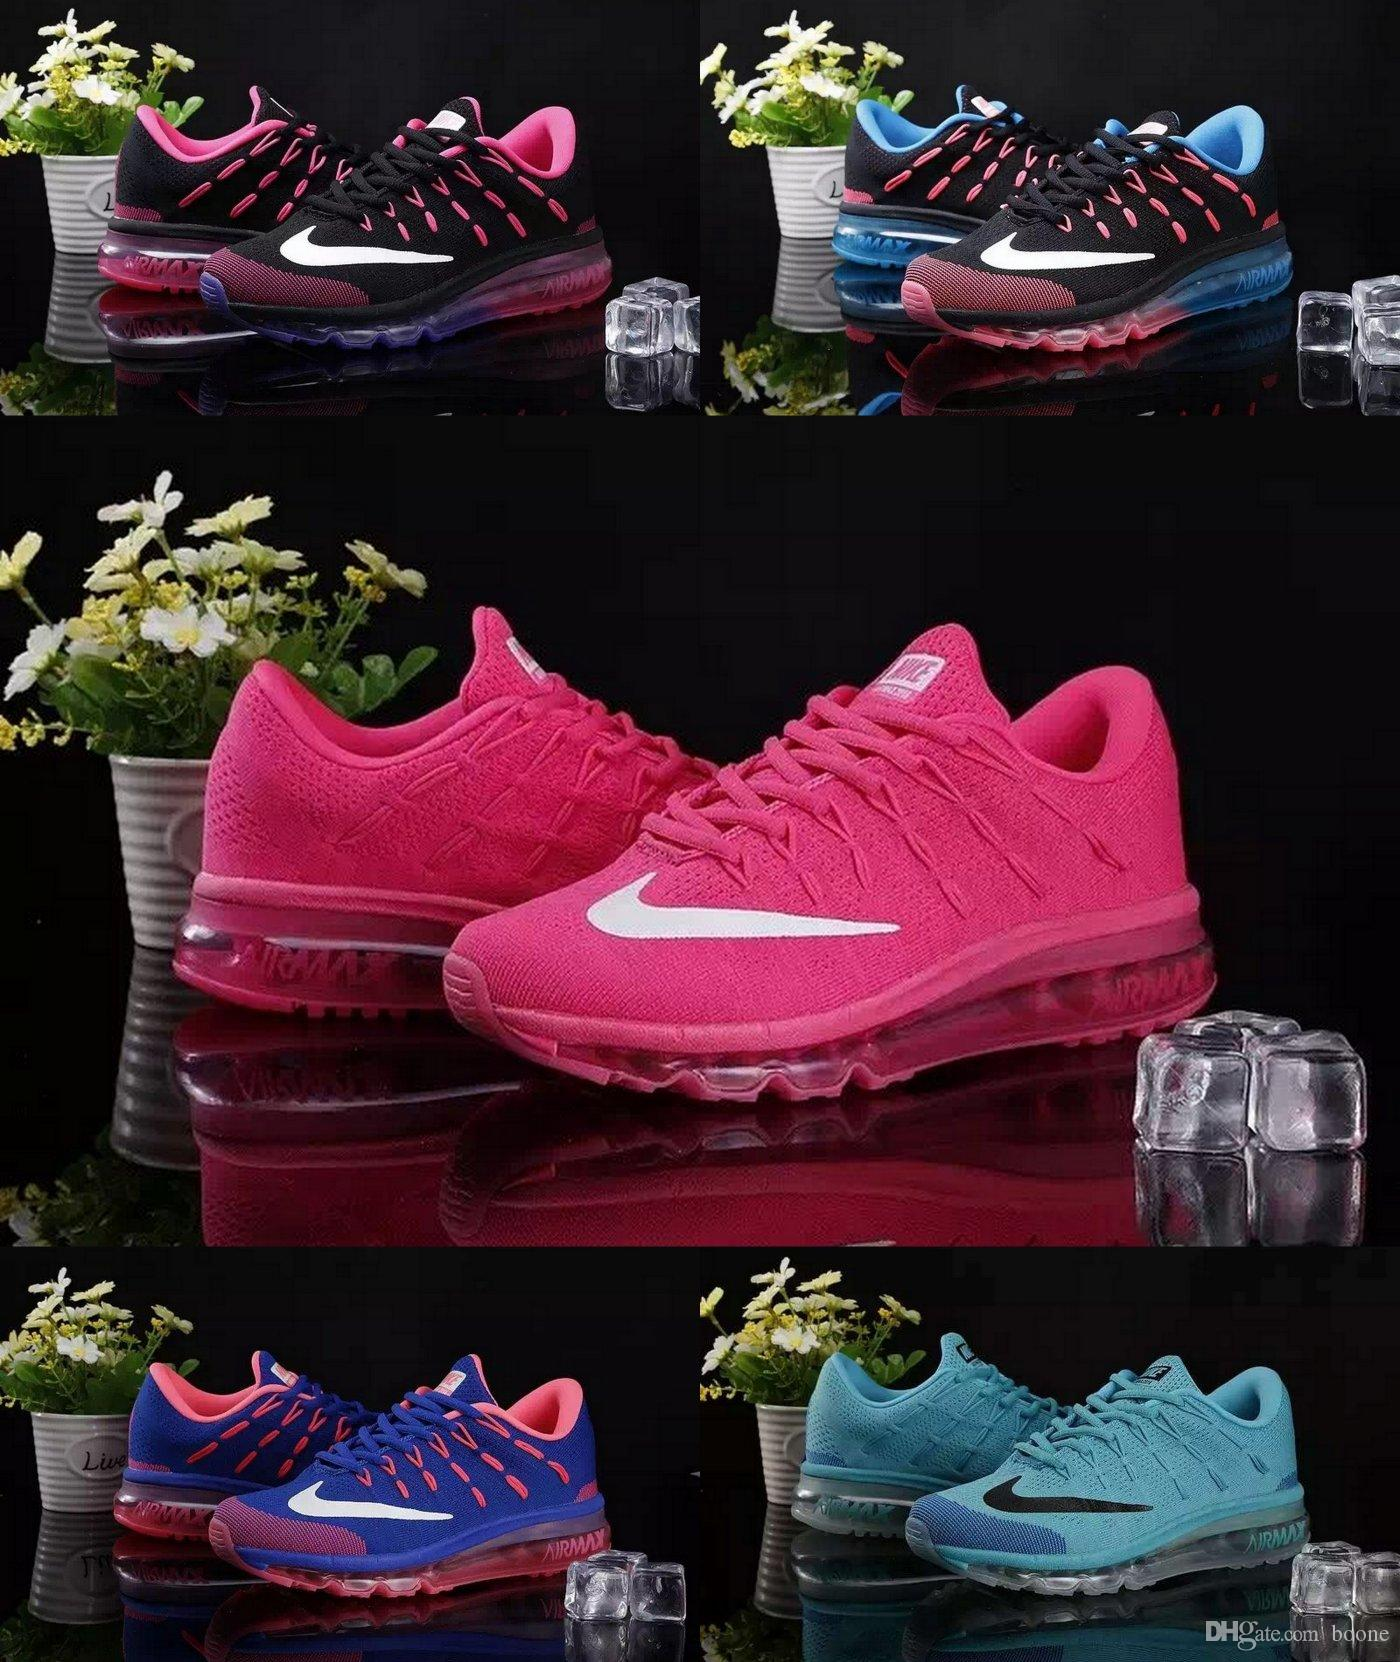 various colors 1976a bddcd Nike Women S FLYKNIT Air Max 2016 Running Shoes 100% Original Mens Running  Shoes Cheap FLYKNIT Air Max 2016 Best Tennis Jogging Shoes Running Clothes  Sports ...